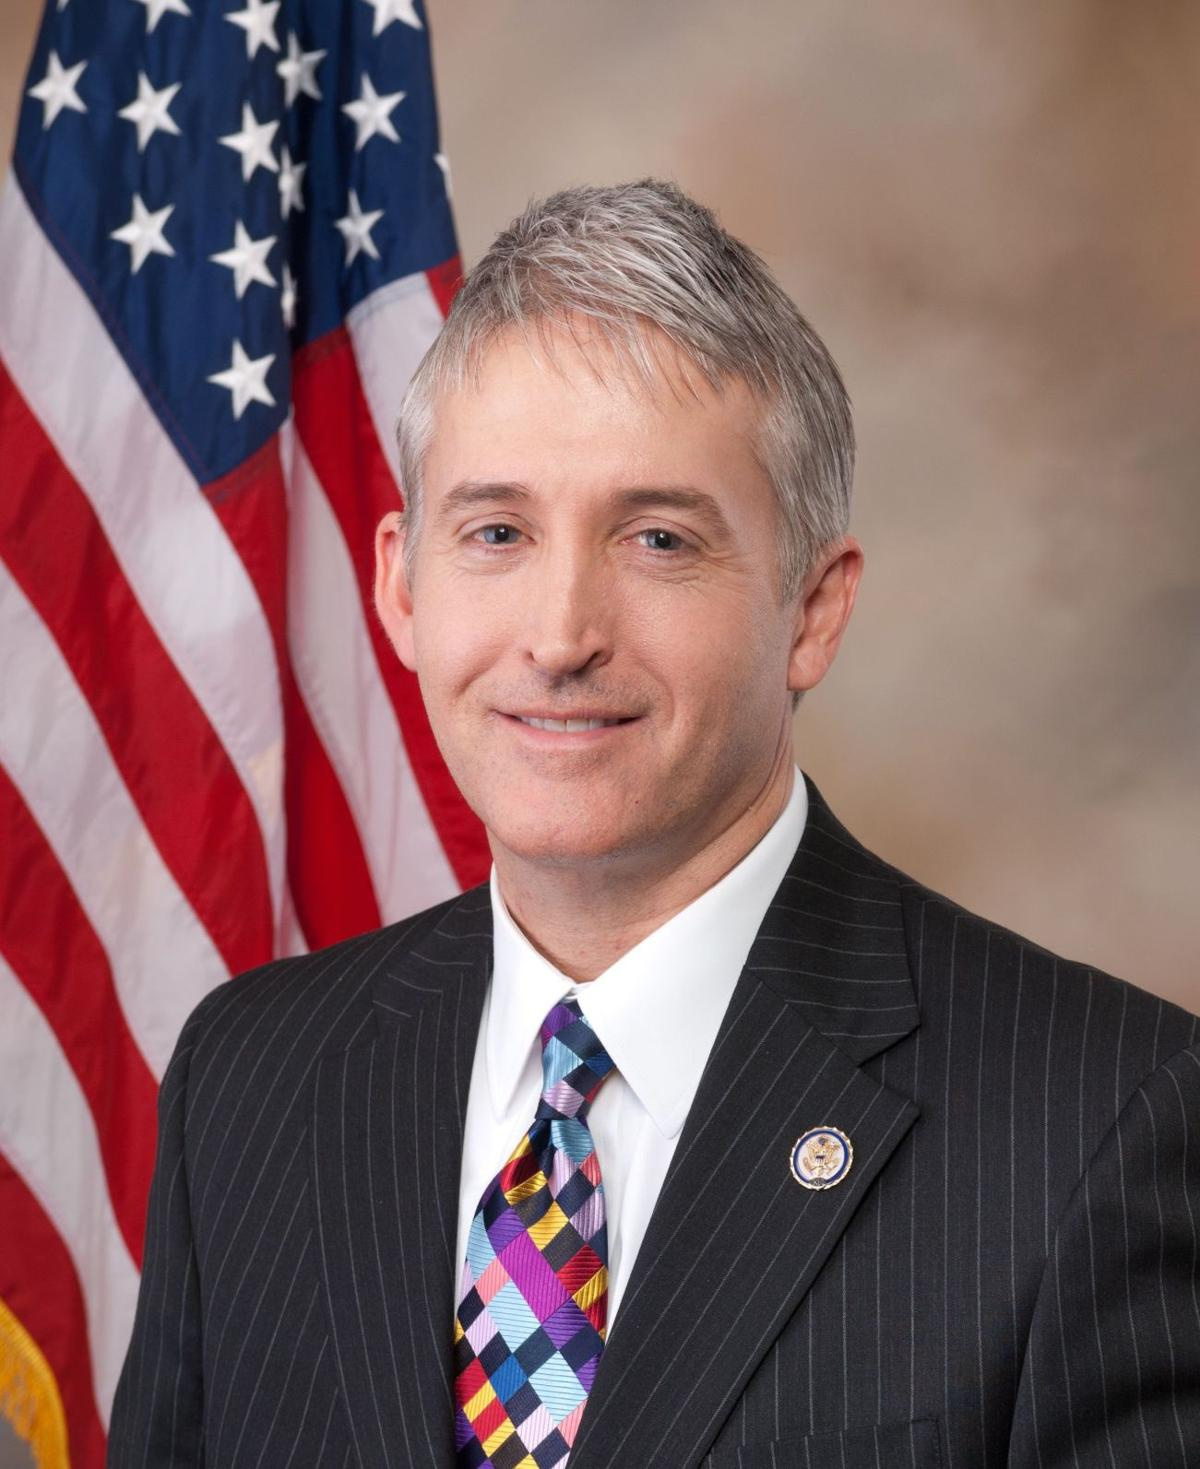 BC-US--Benghazi Attack, 10th Ld-Writethru,802 investigationAP Photo DCSA120, WX102, DCSA122 Lindsey Graham: White House officials 'scumbags' S.C. Rep. Trey Gowdy to head Benghazi panel Just the facts: Finally get to the truth about Benghazi